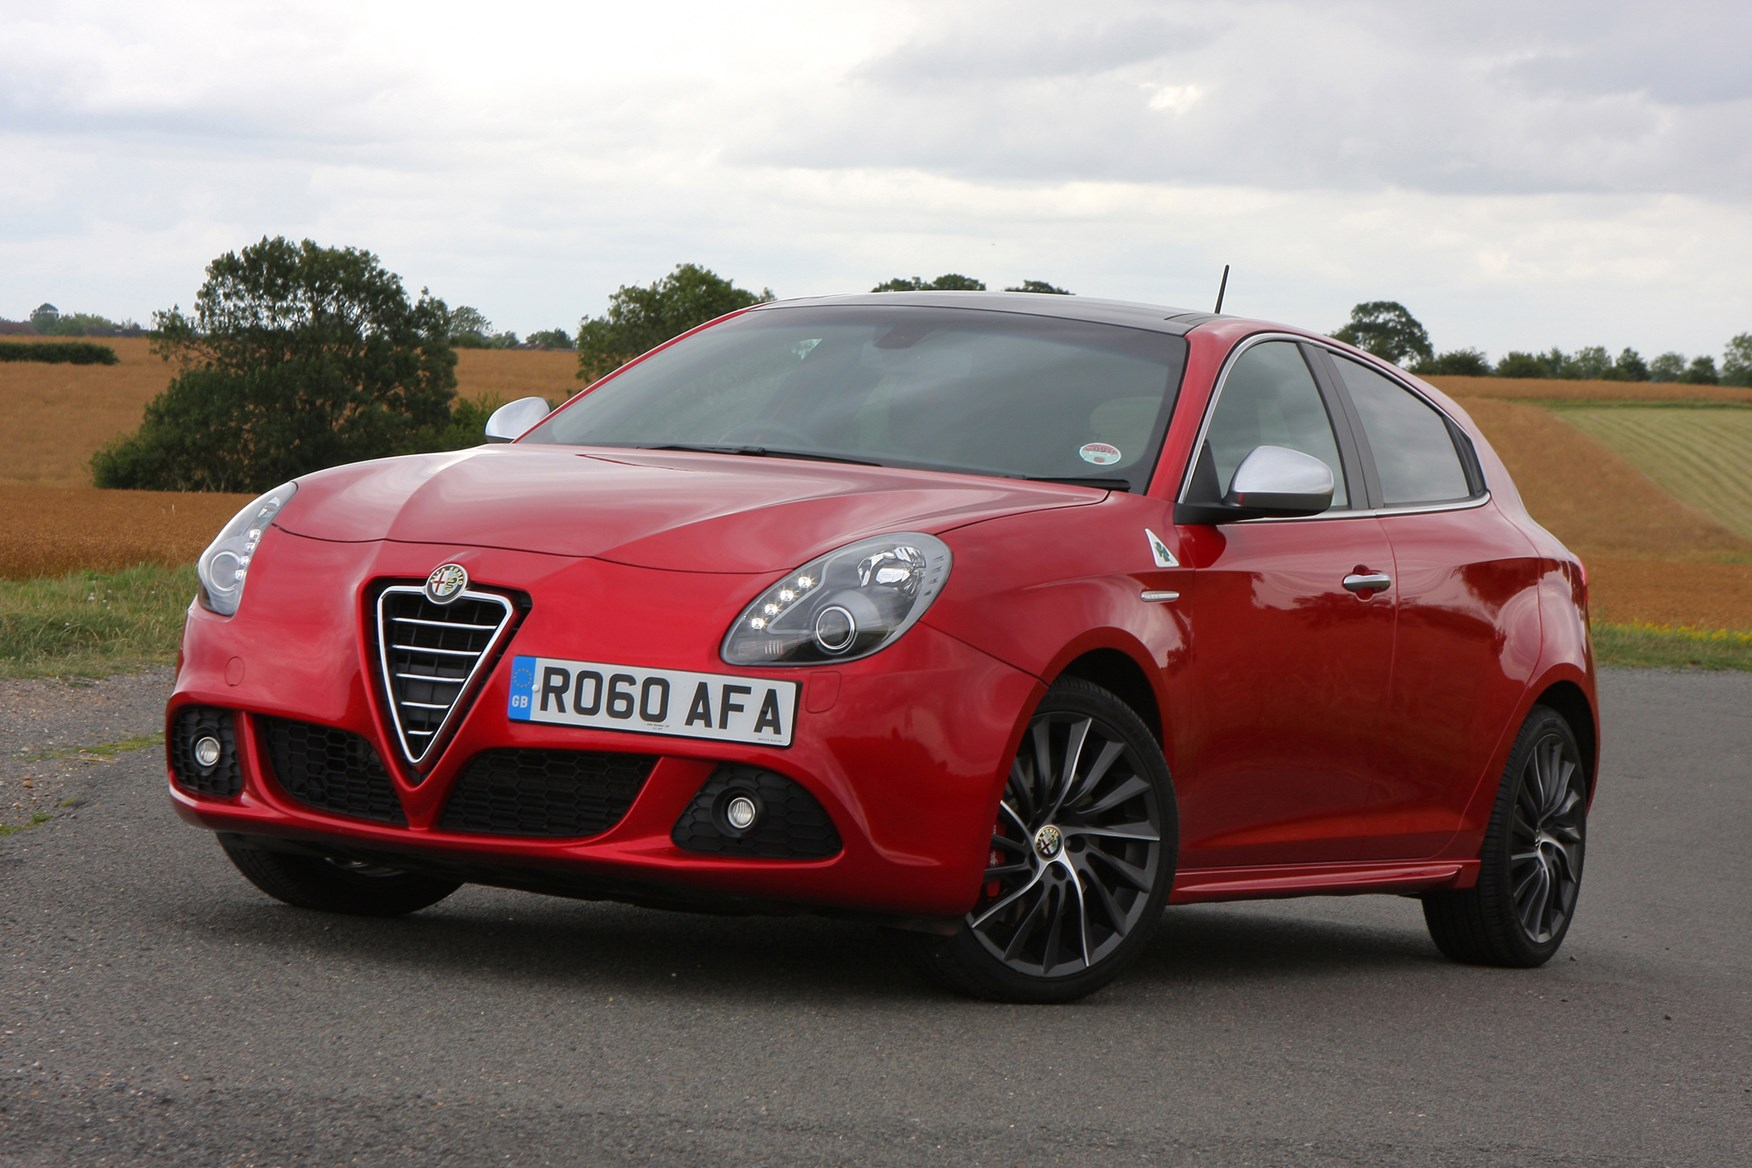 alfa romeo giulietta hatchback 2010 photos parkers. Black Bedroom Furniture Sets. Home Design Ideas